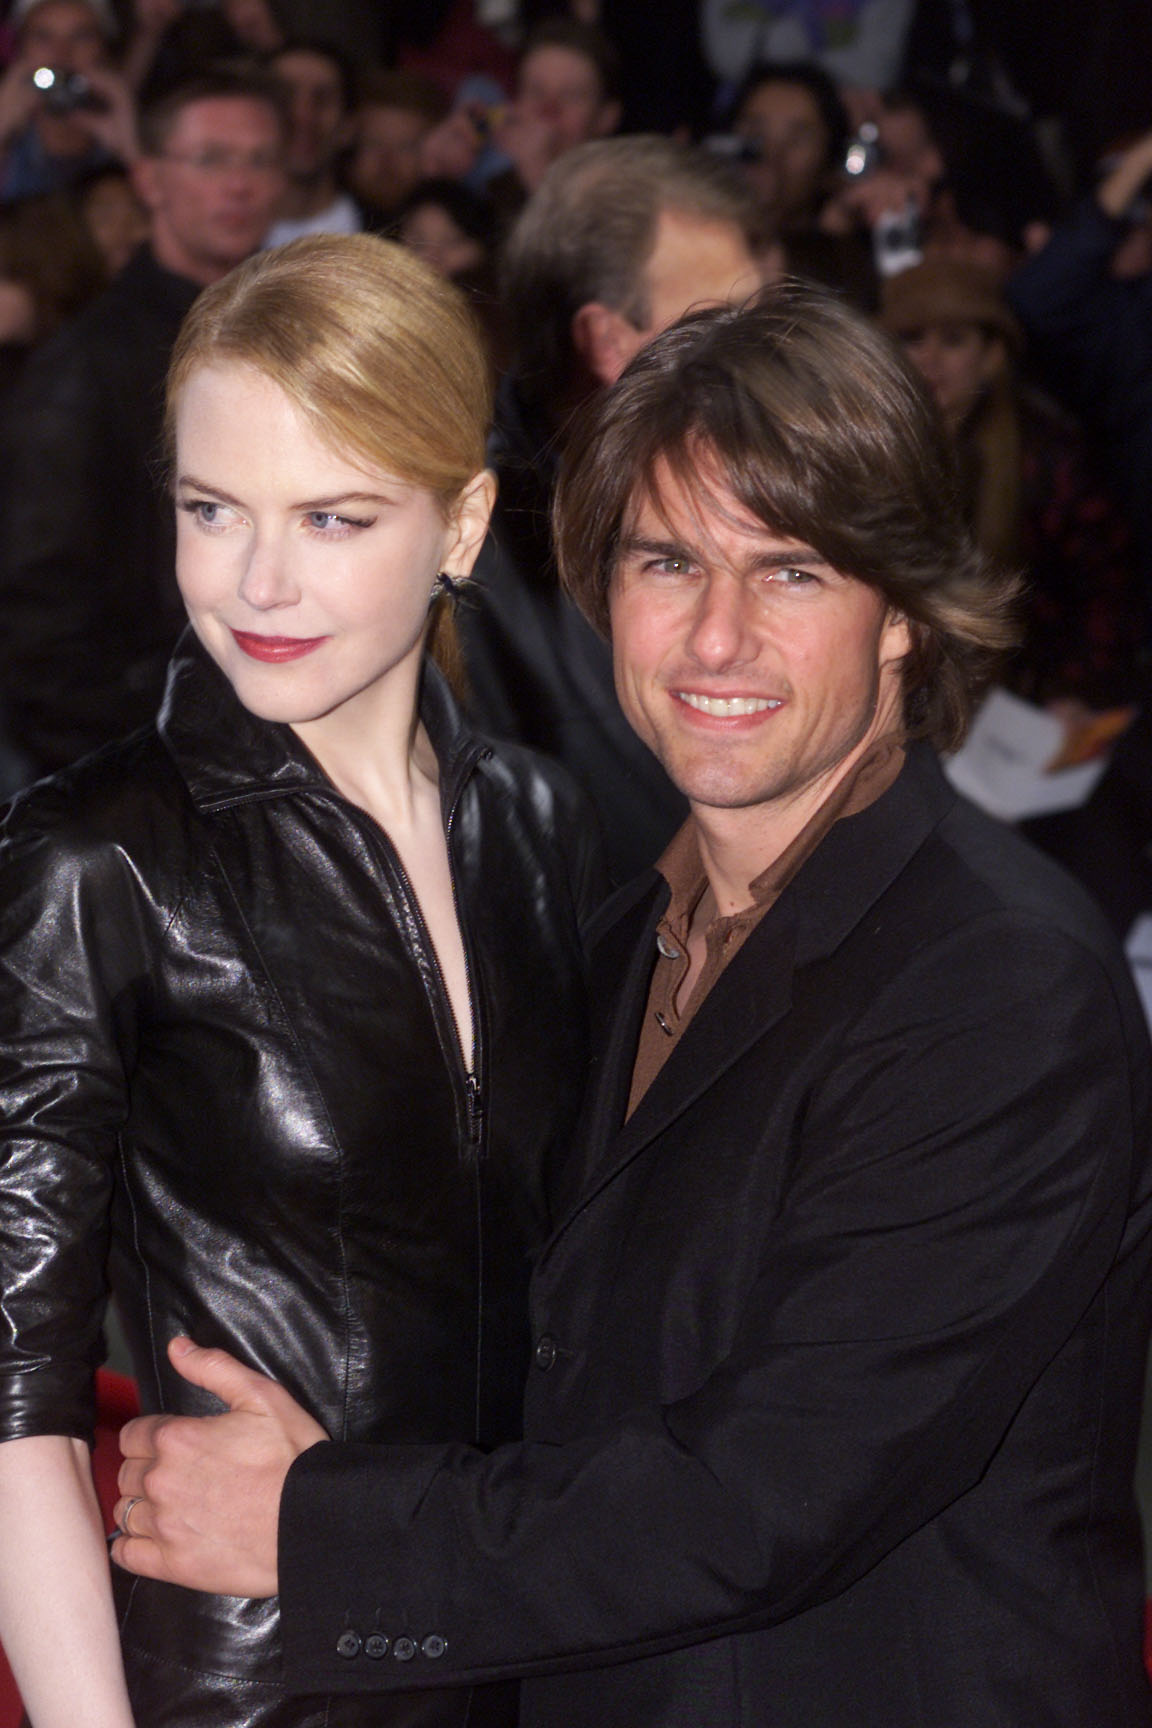 An old photo of Nicole Kidman after confirming divorce from